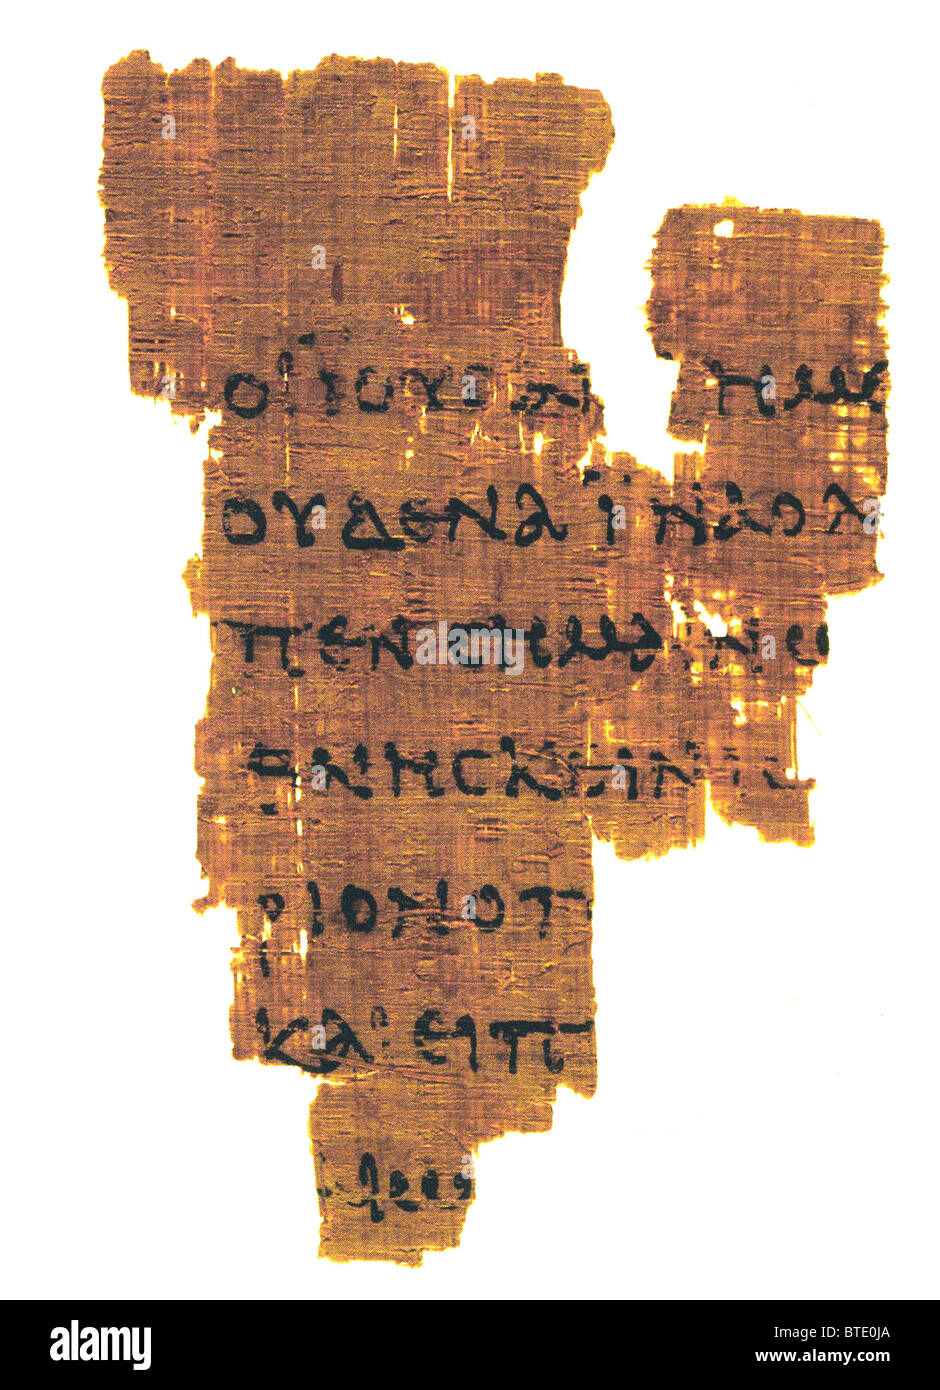 5365. The Ryland Papyrus P52, the earliest surviving piece of New Testament Scripture. A fragment of a papyrus codex - Stock Image